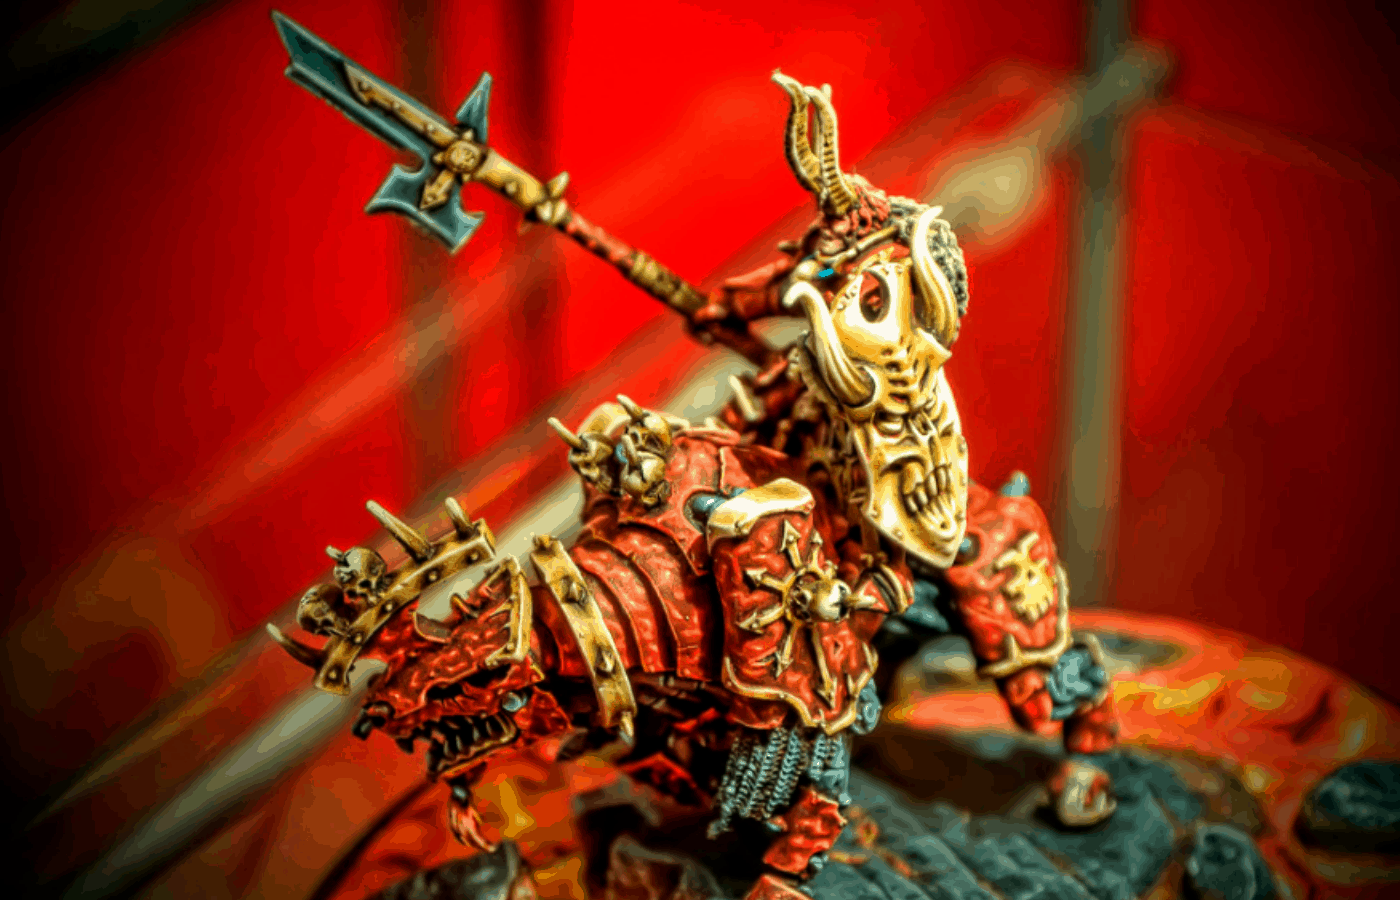 o warhammer miniatures come painted